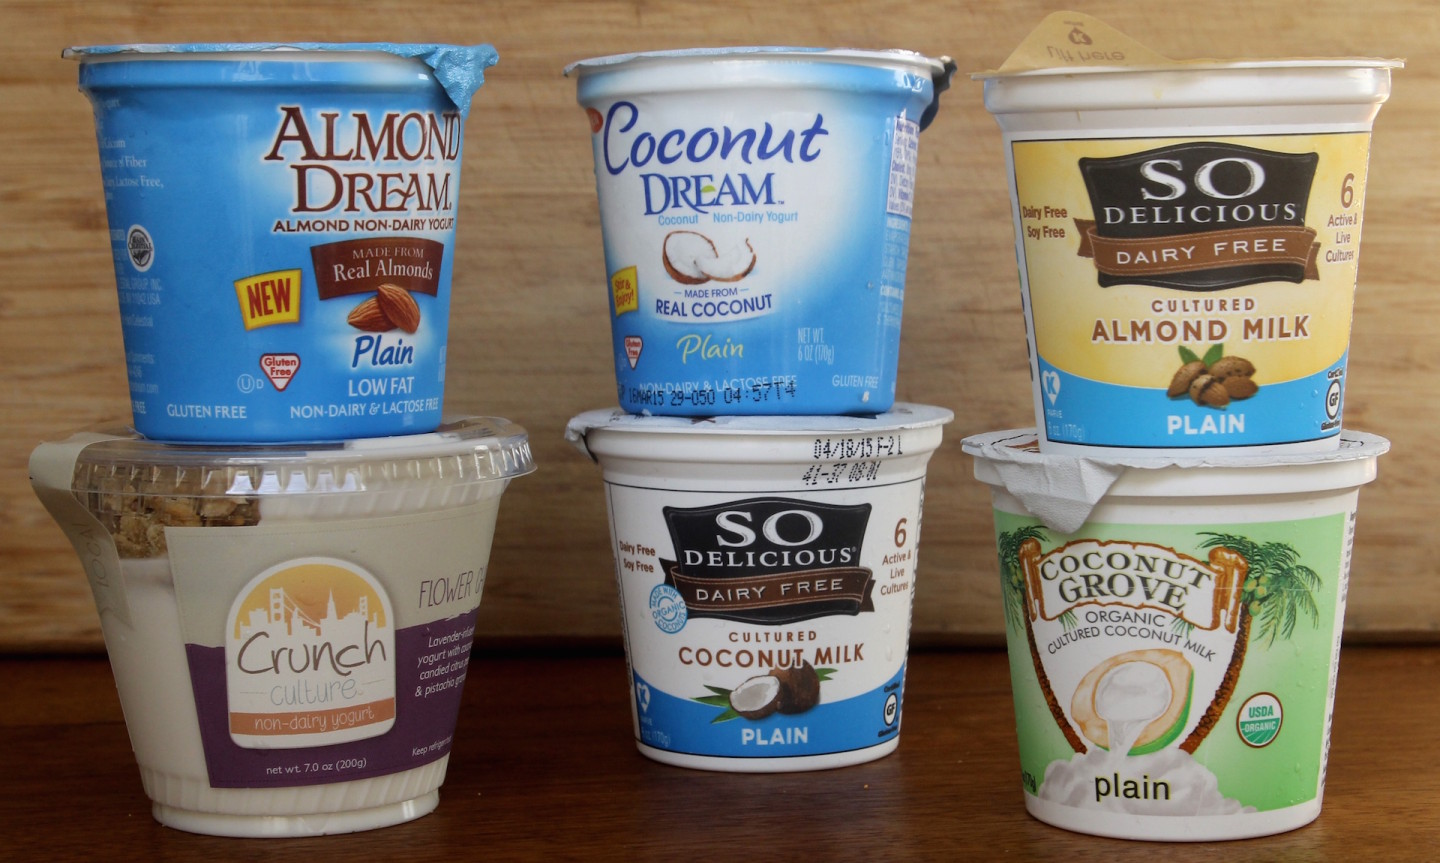 Six almond and coconut milk yogurts are now available in the Bay Area.